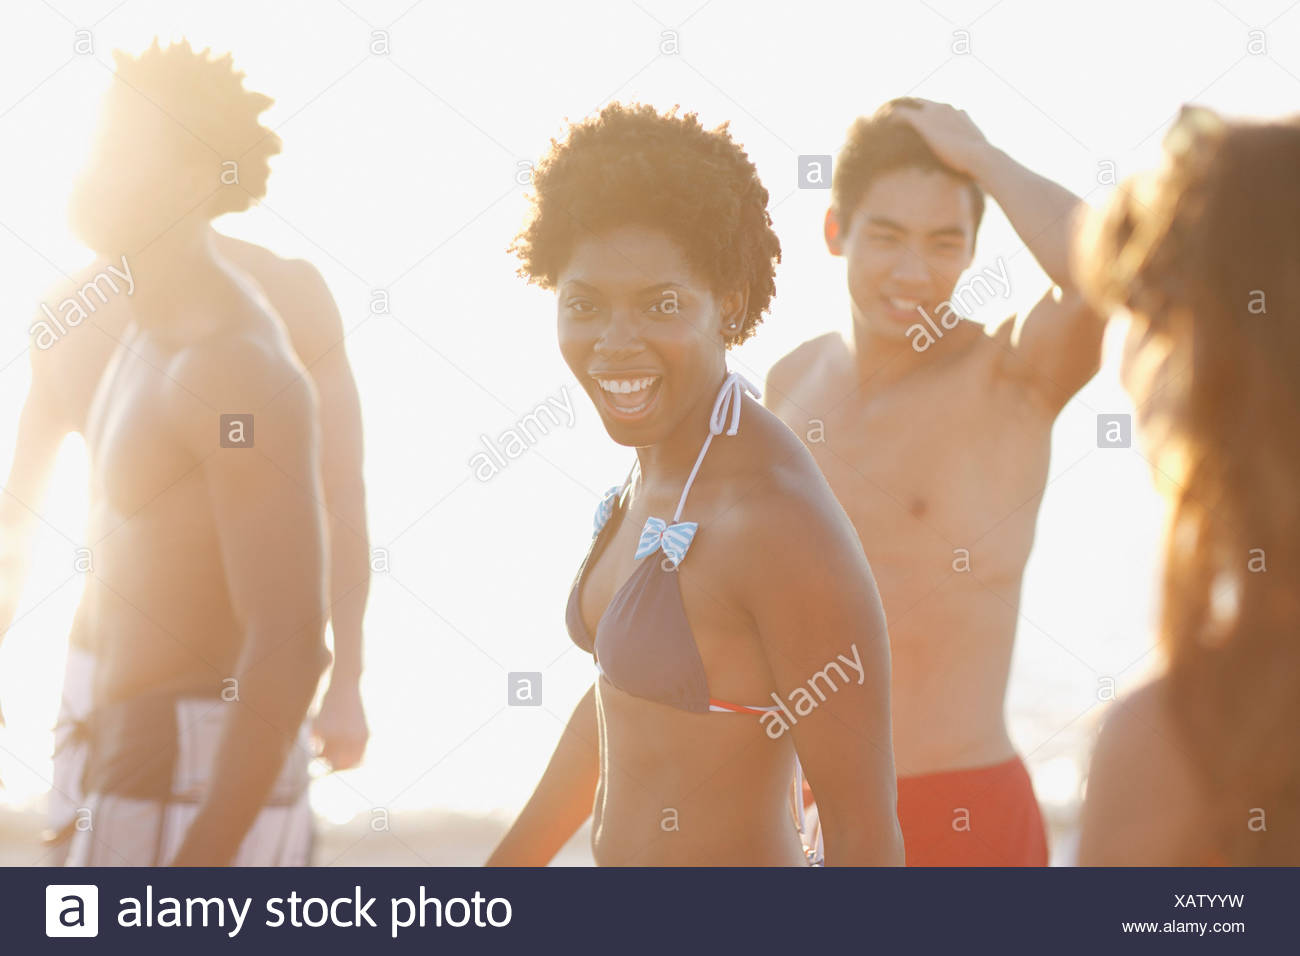 Friends in swimsuits walking on beach - Stock Image